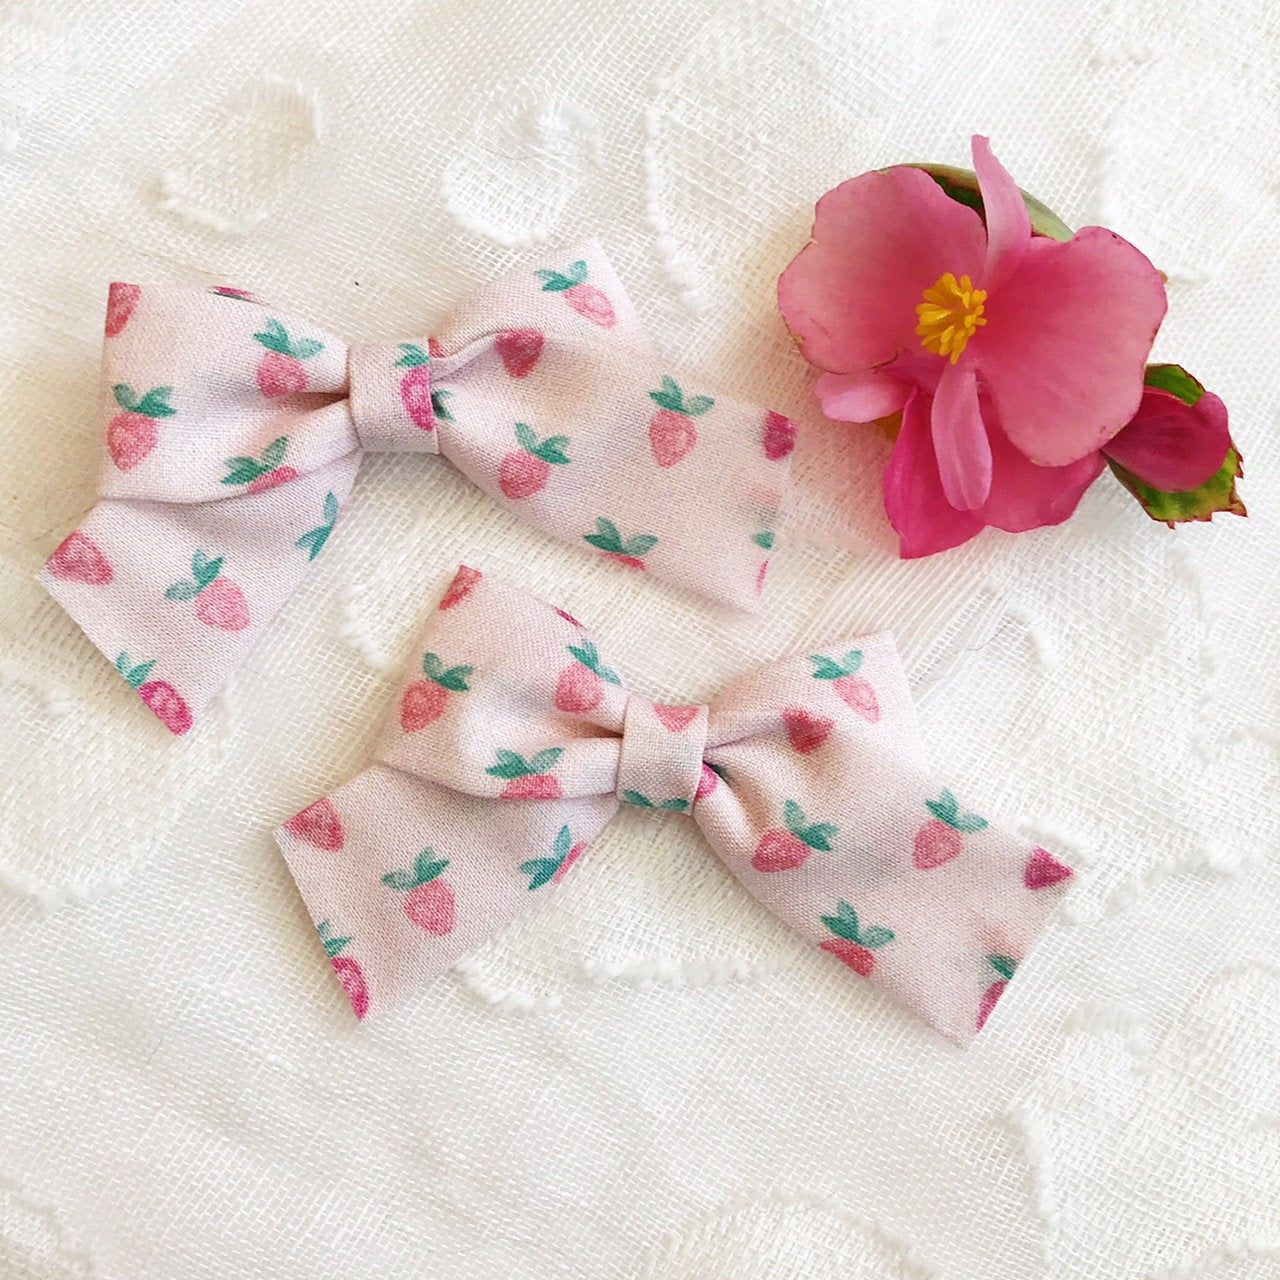 New Handmade girls Set Of 2 Small or Tiny Hair Bow Clips Or Baby Headbands pink